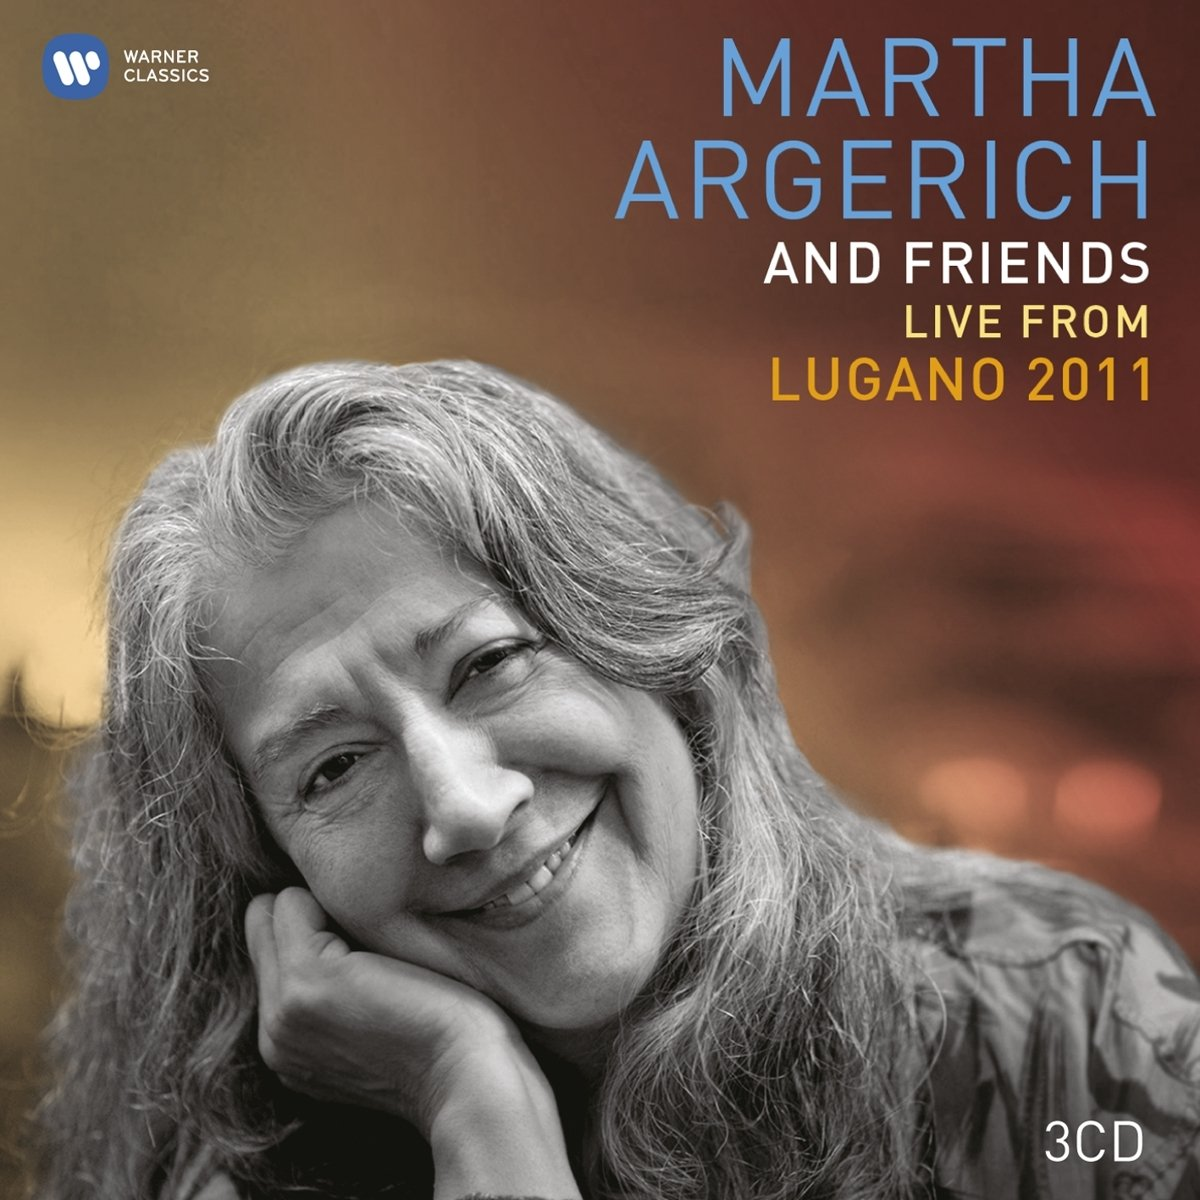 Martha Argerich & Friends: Live at the Lugano 2011